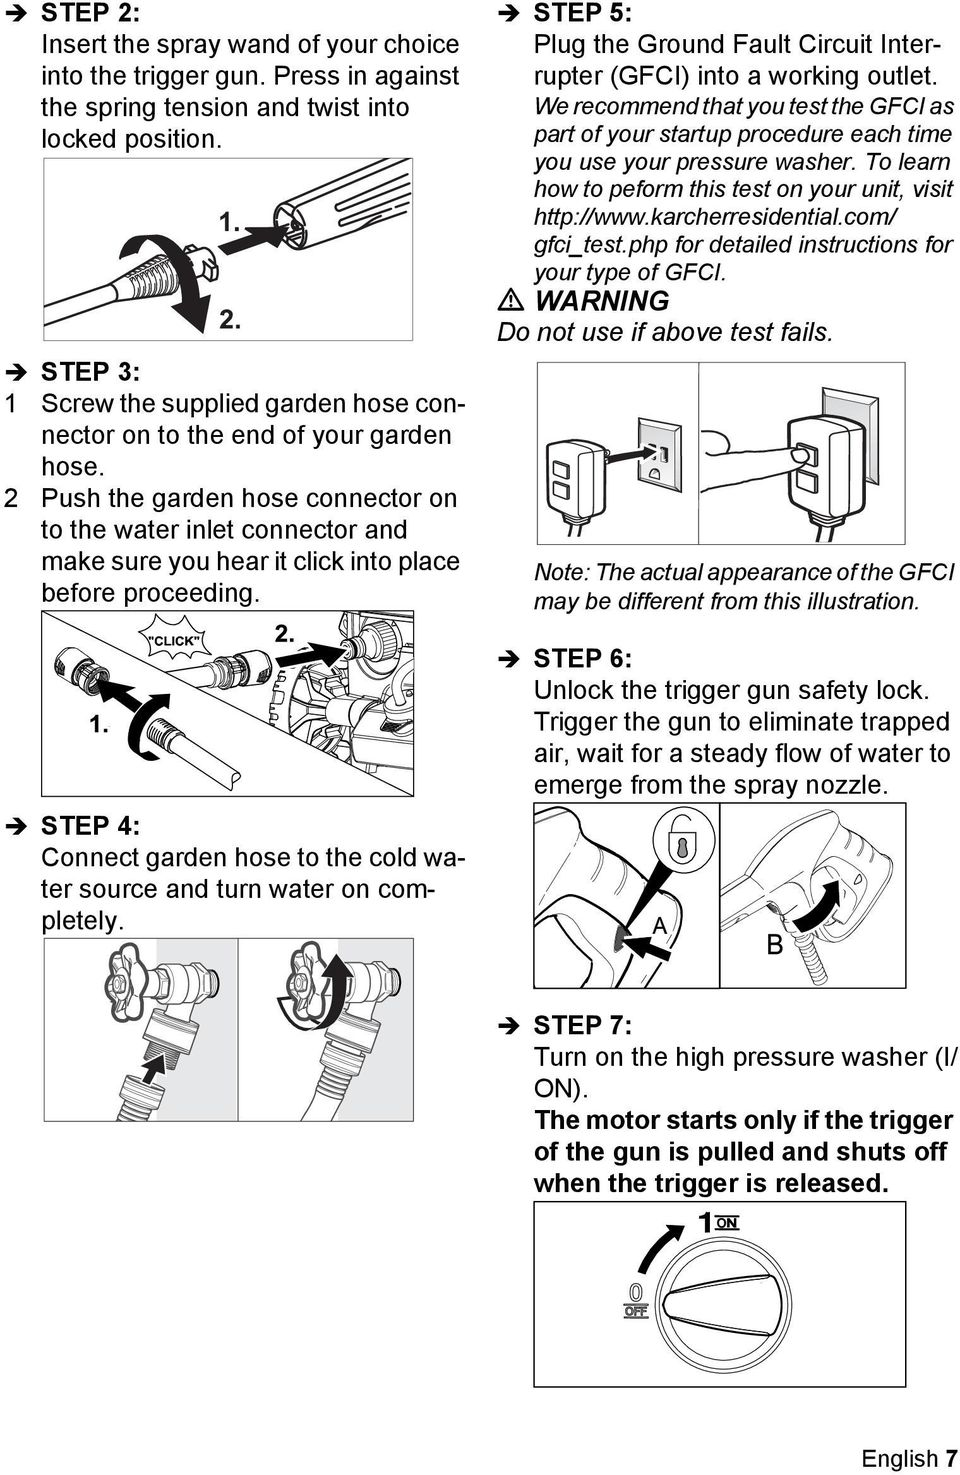 2 Push the garden hose connector on to the water inlet connector and make sure you hear it click into place before proceeding.